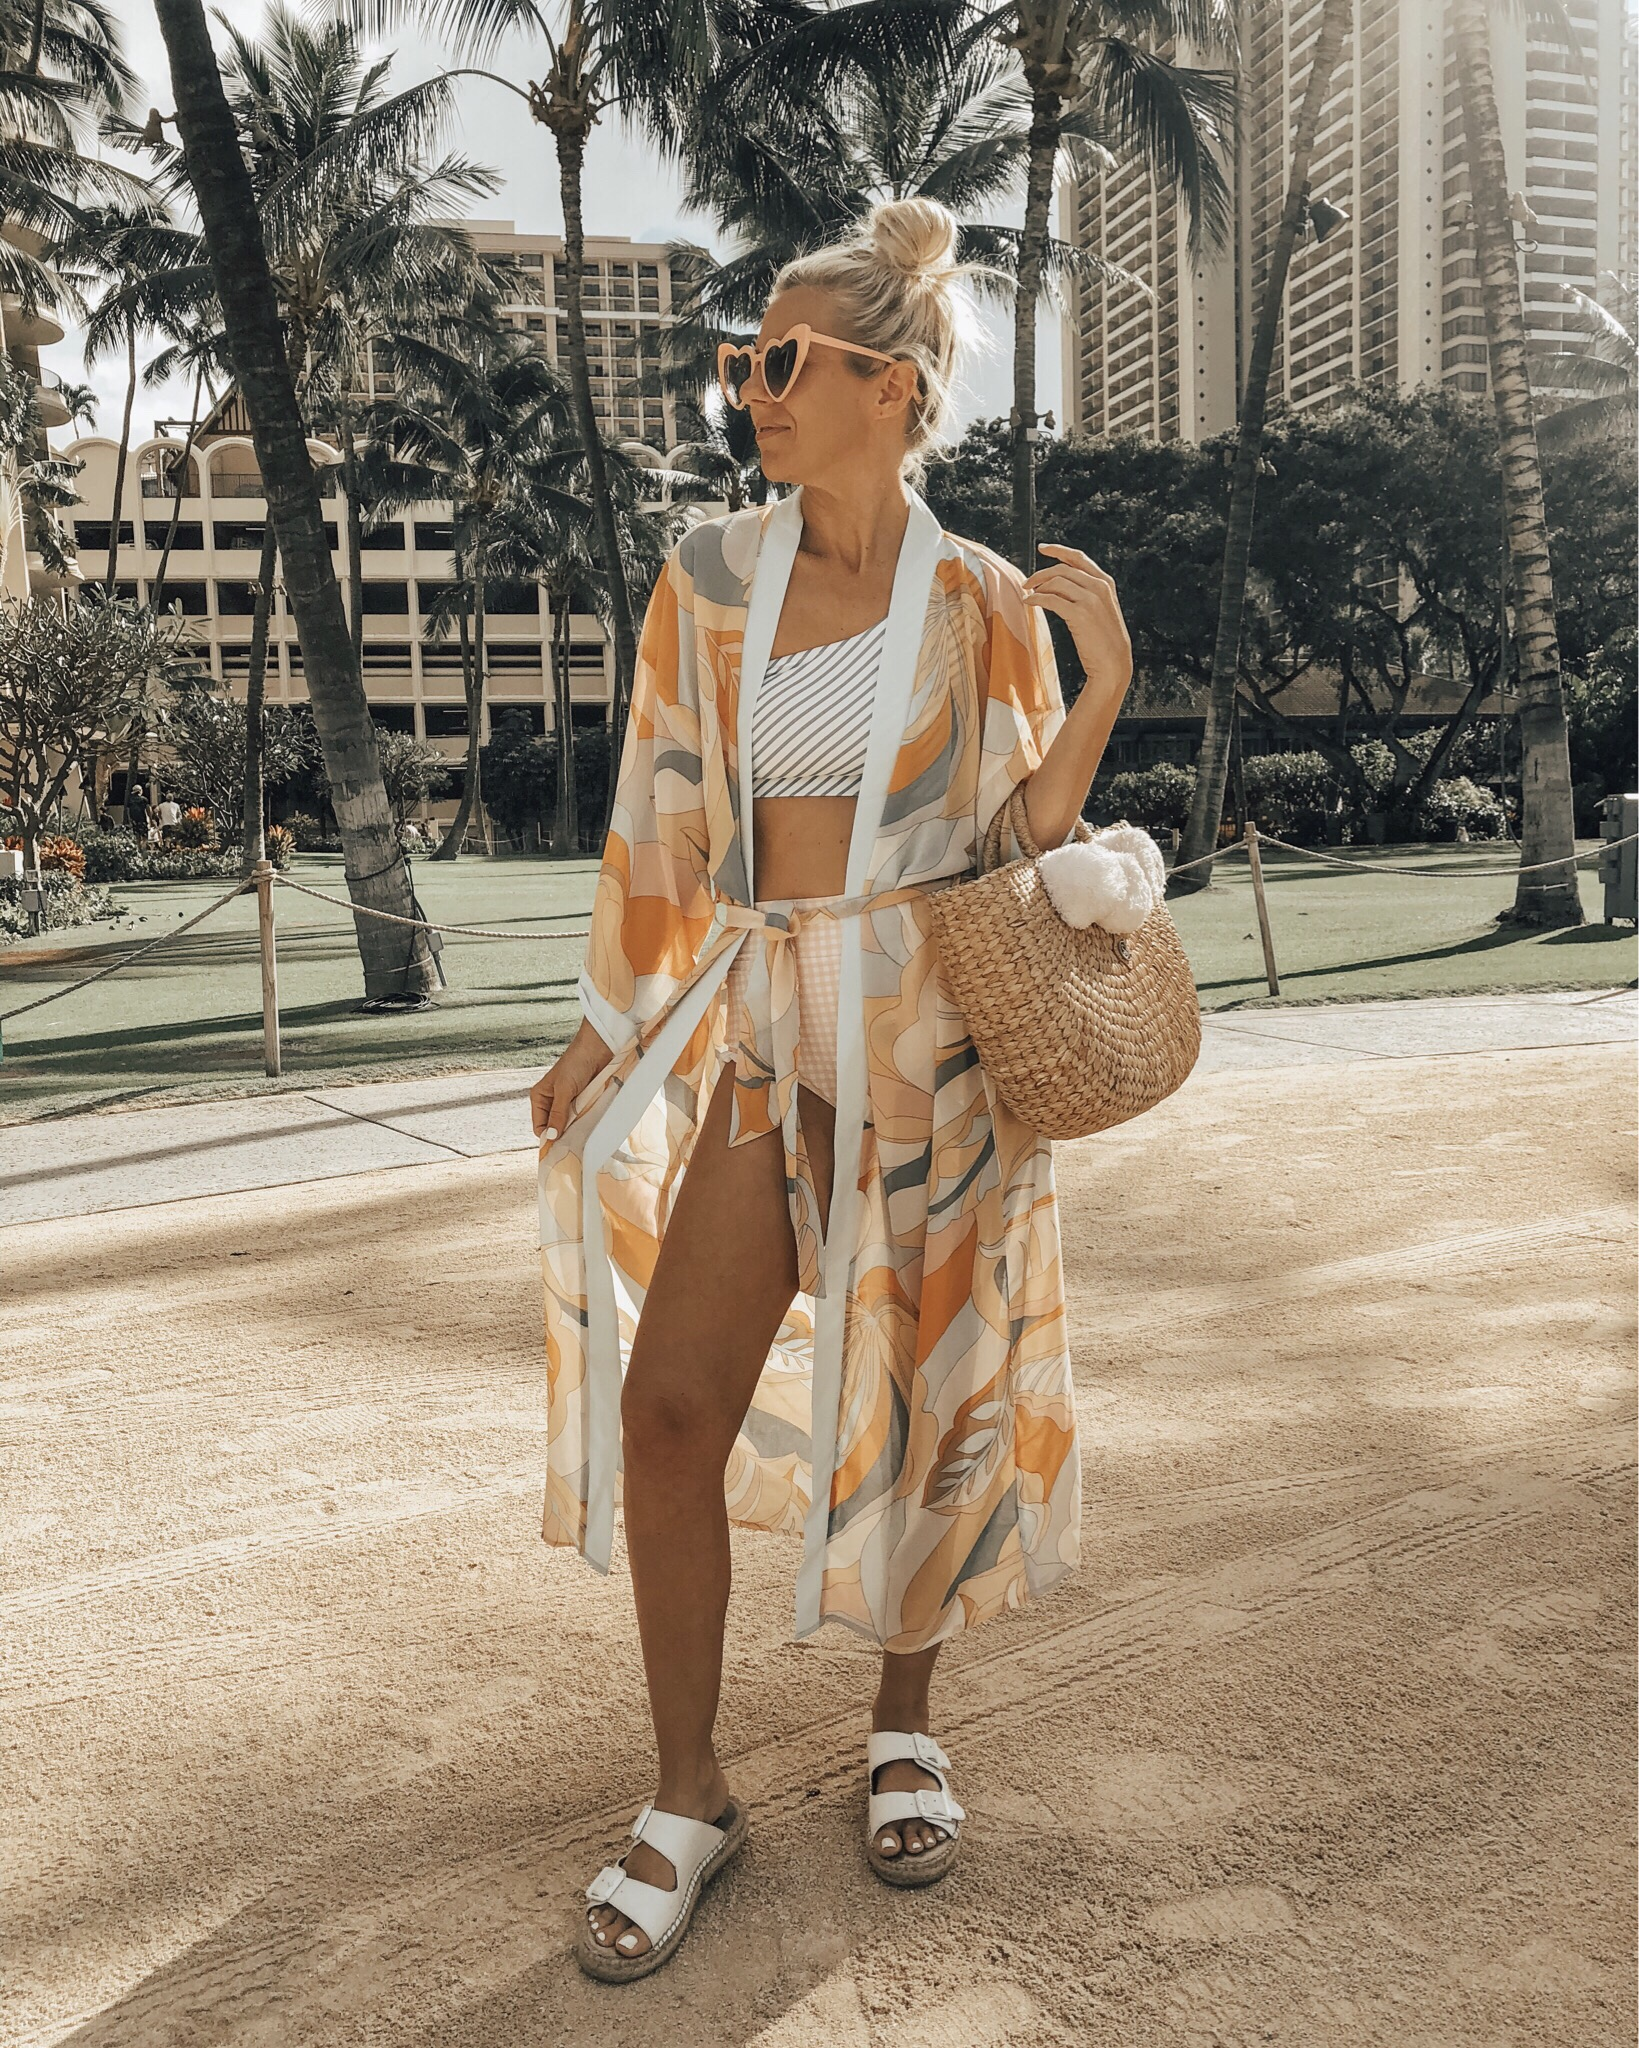 SPRING BREAK VACATION STYLE- Jaclyn De Leon Style = Are you heading somehwere warm for Spring Break and need to update your style? I've got you covered with all the looks you need for the beach or pool including boho style tunics, kimonos, swim cover ups and maxi dresses.